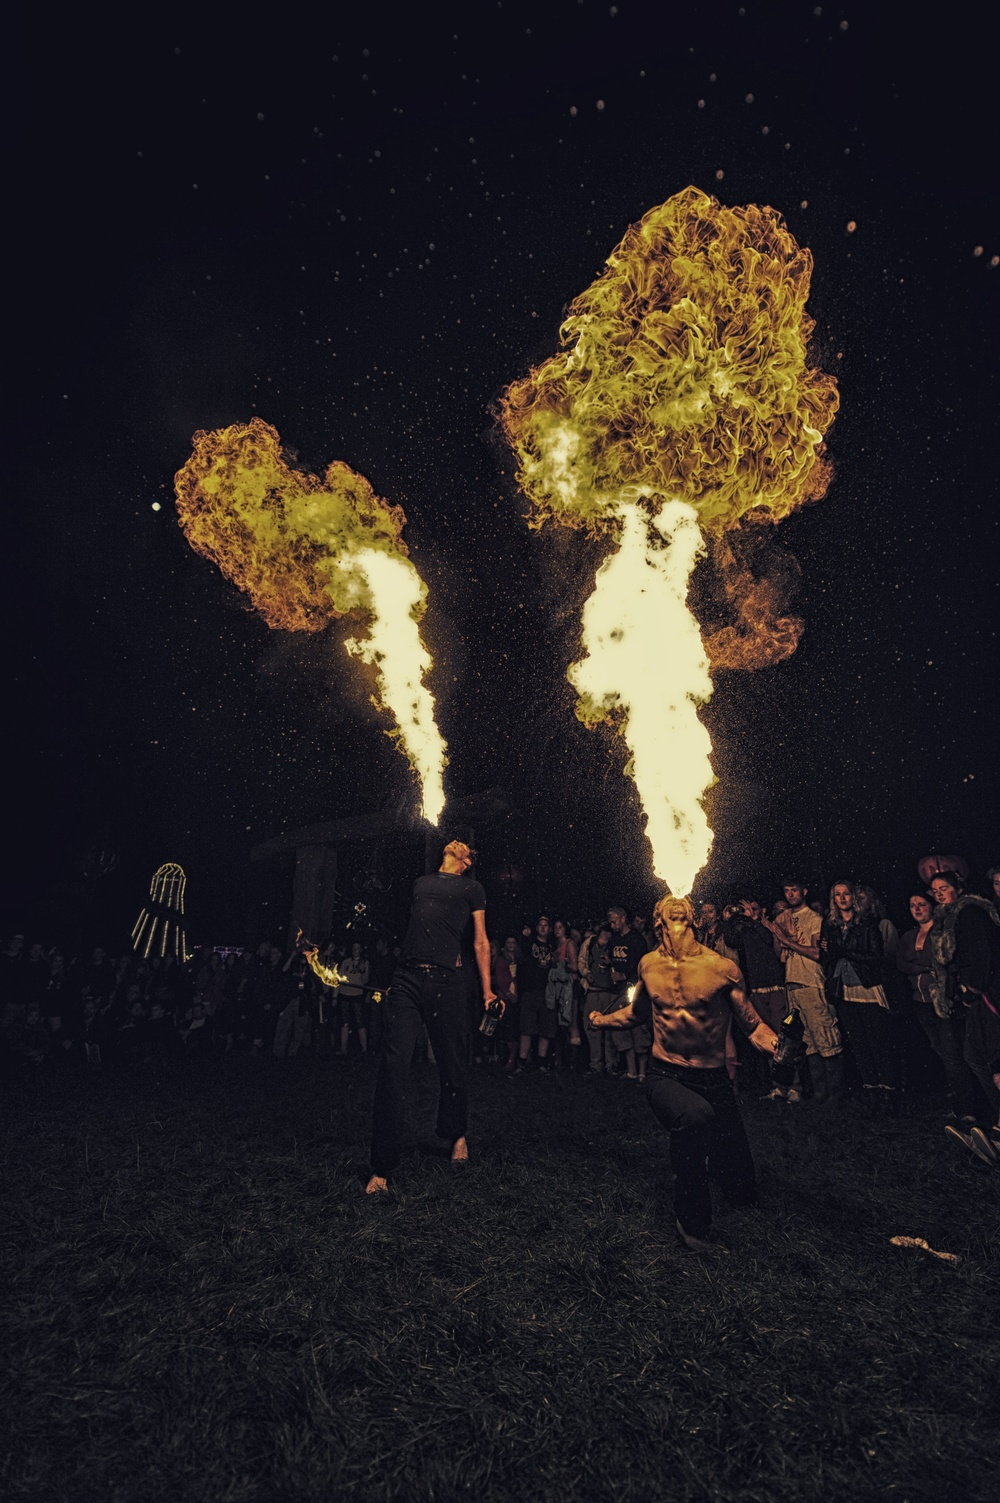 IRELAND'S ORIGINAL FIRE PERFORMANCE TROUPE